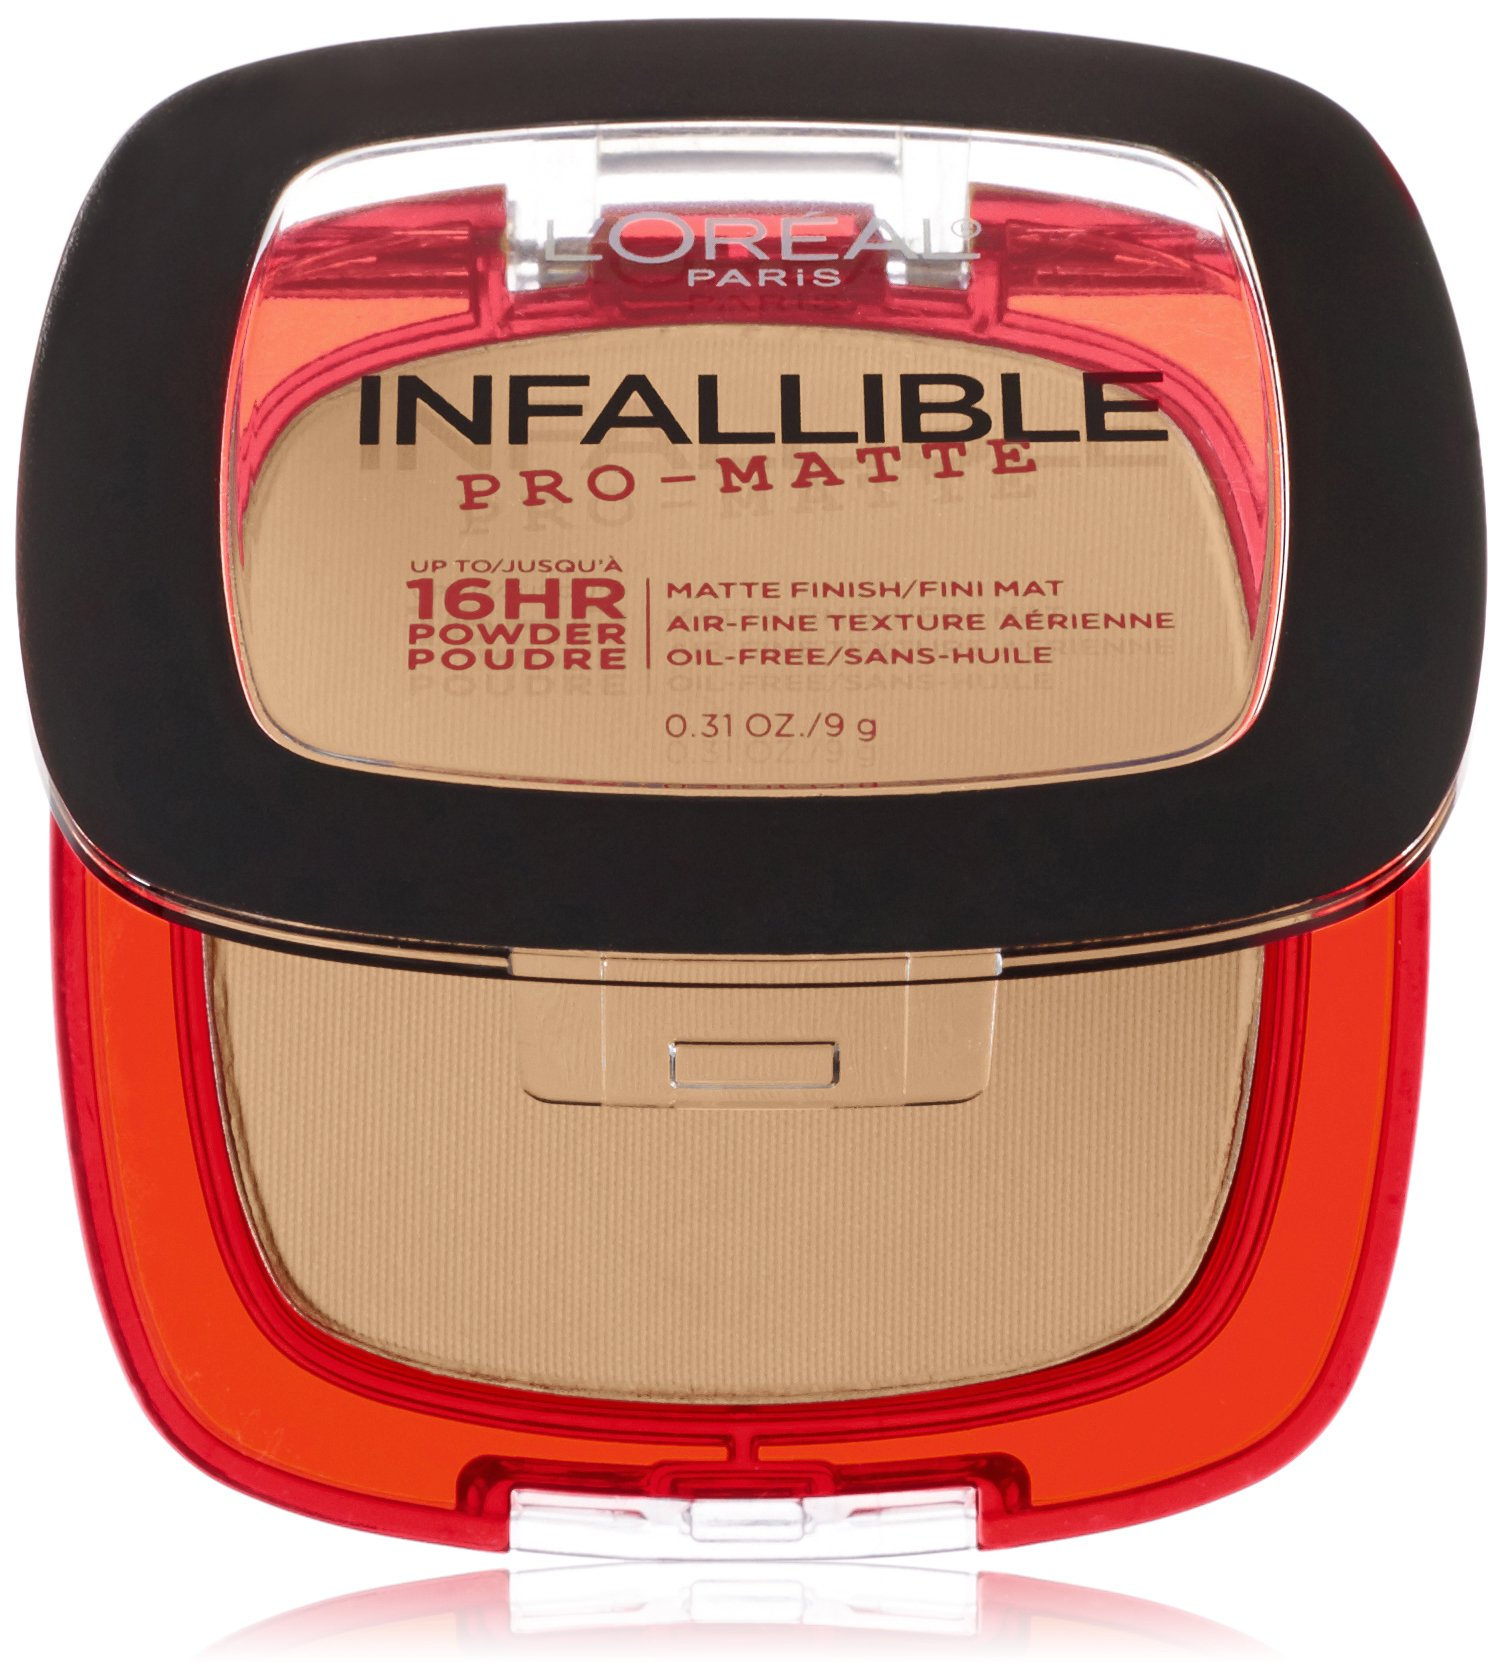 L'Oréal Paris Infallible Pro-Matte Powder, Natural Beige, 0.31 oz.